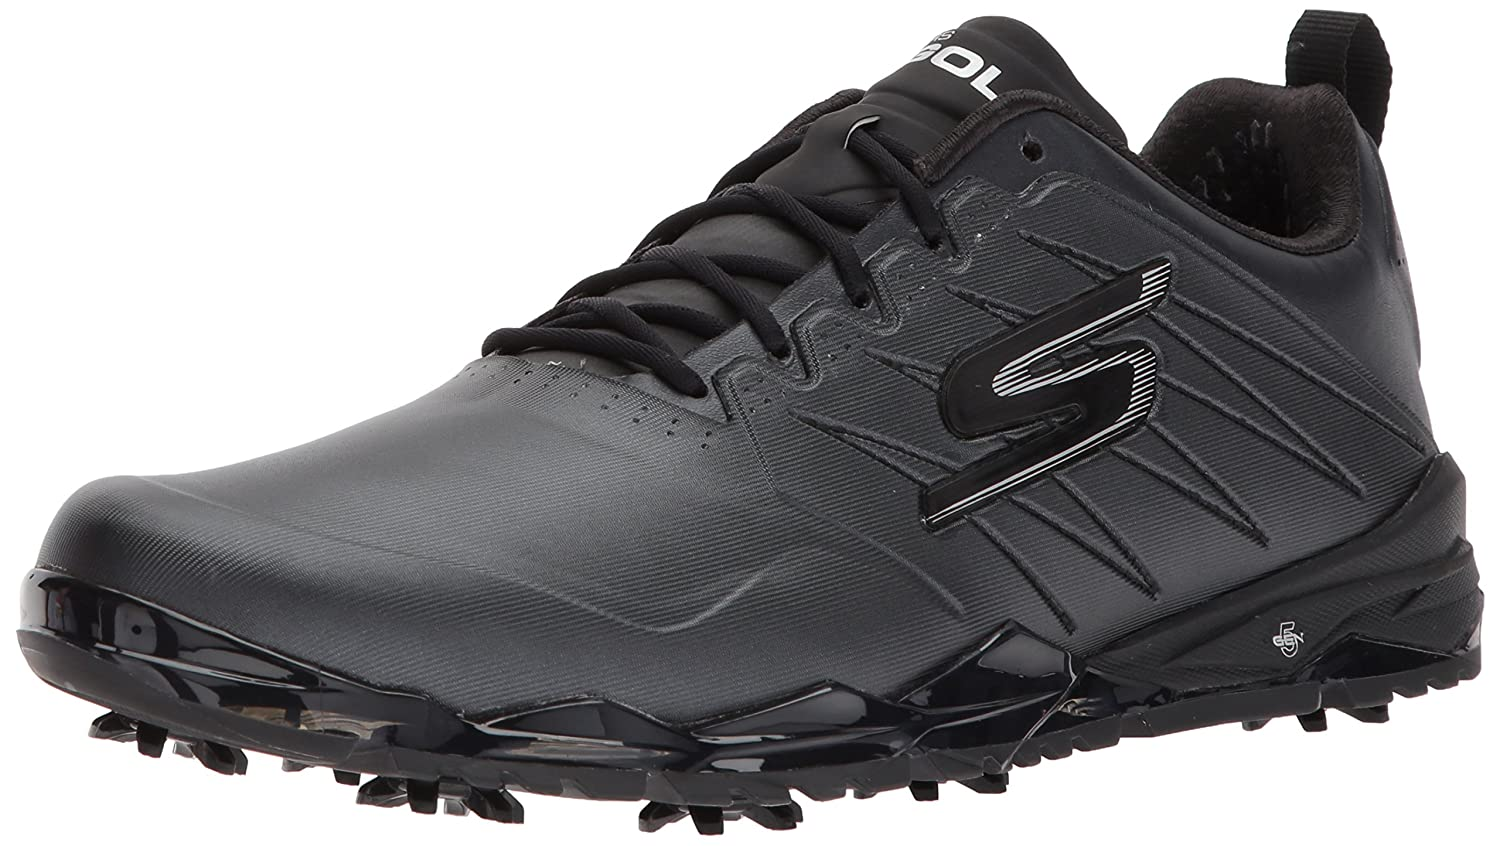 Skechers Men's Go Golf Focus 2 Walking Shoe B06XSCYQFR 14 D(M) US|Black